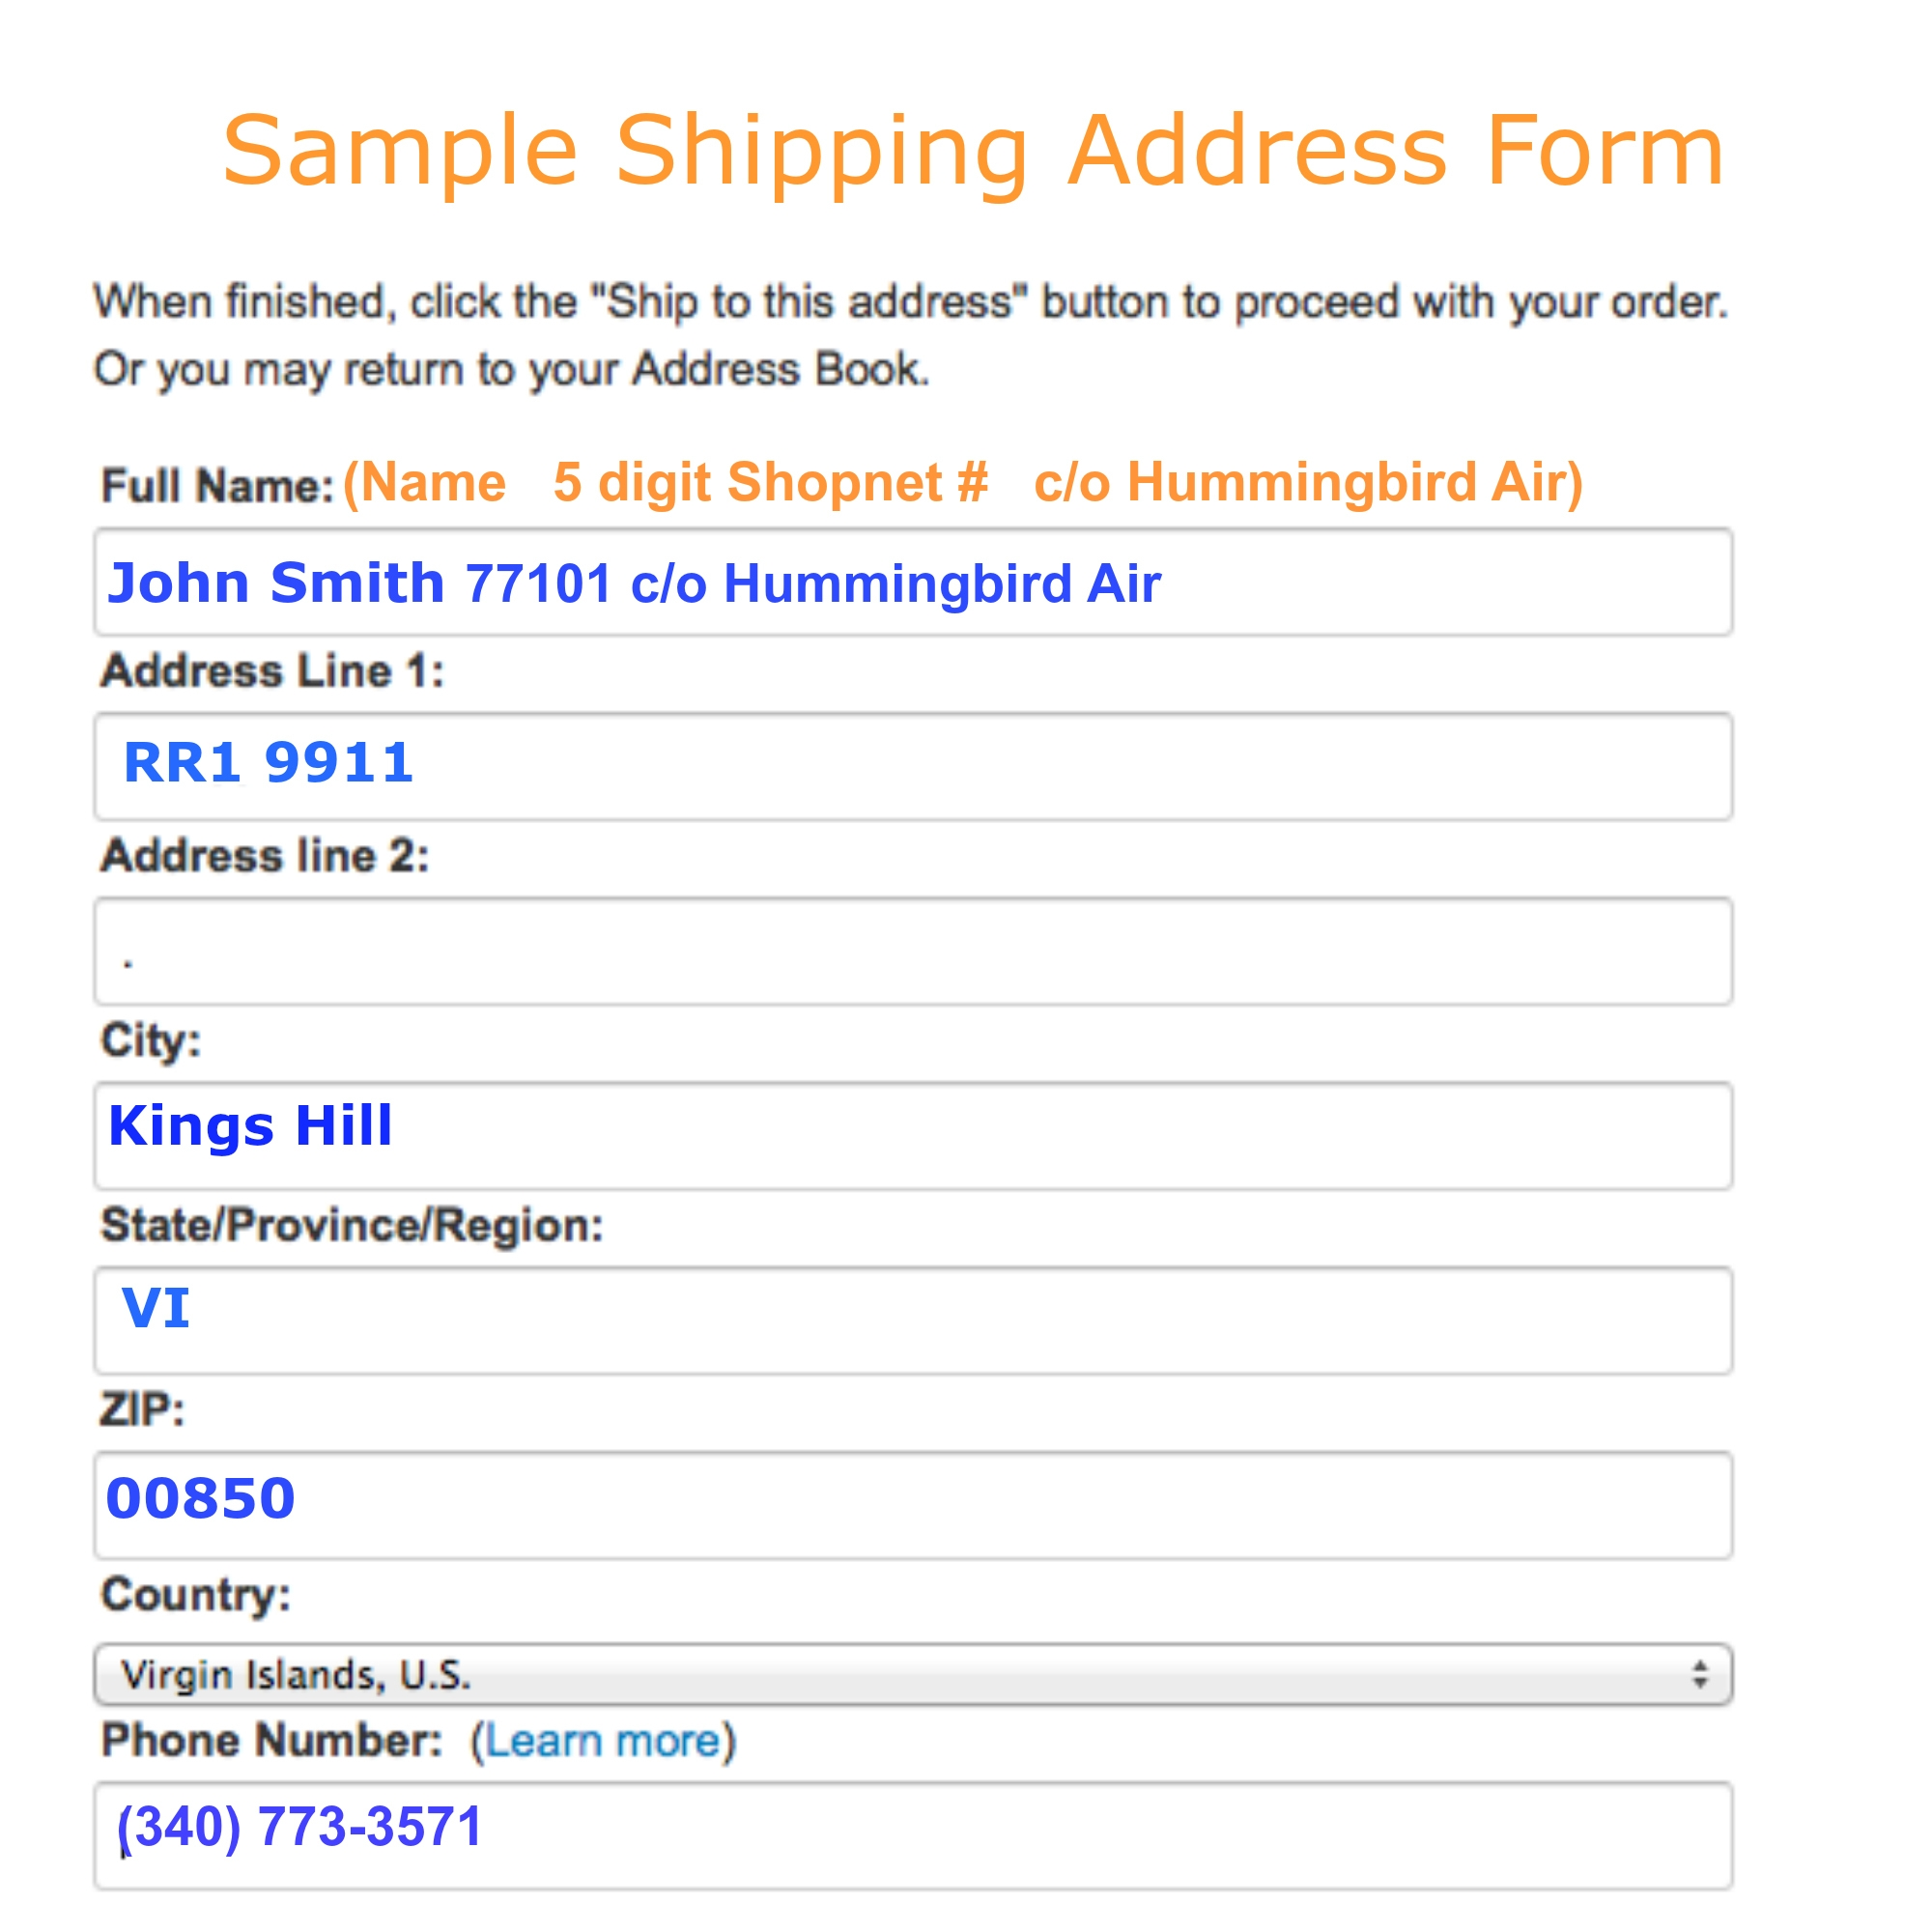 hummingbird air amazon products now delivered to dominica invoice address amazon